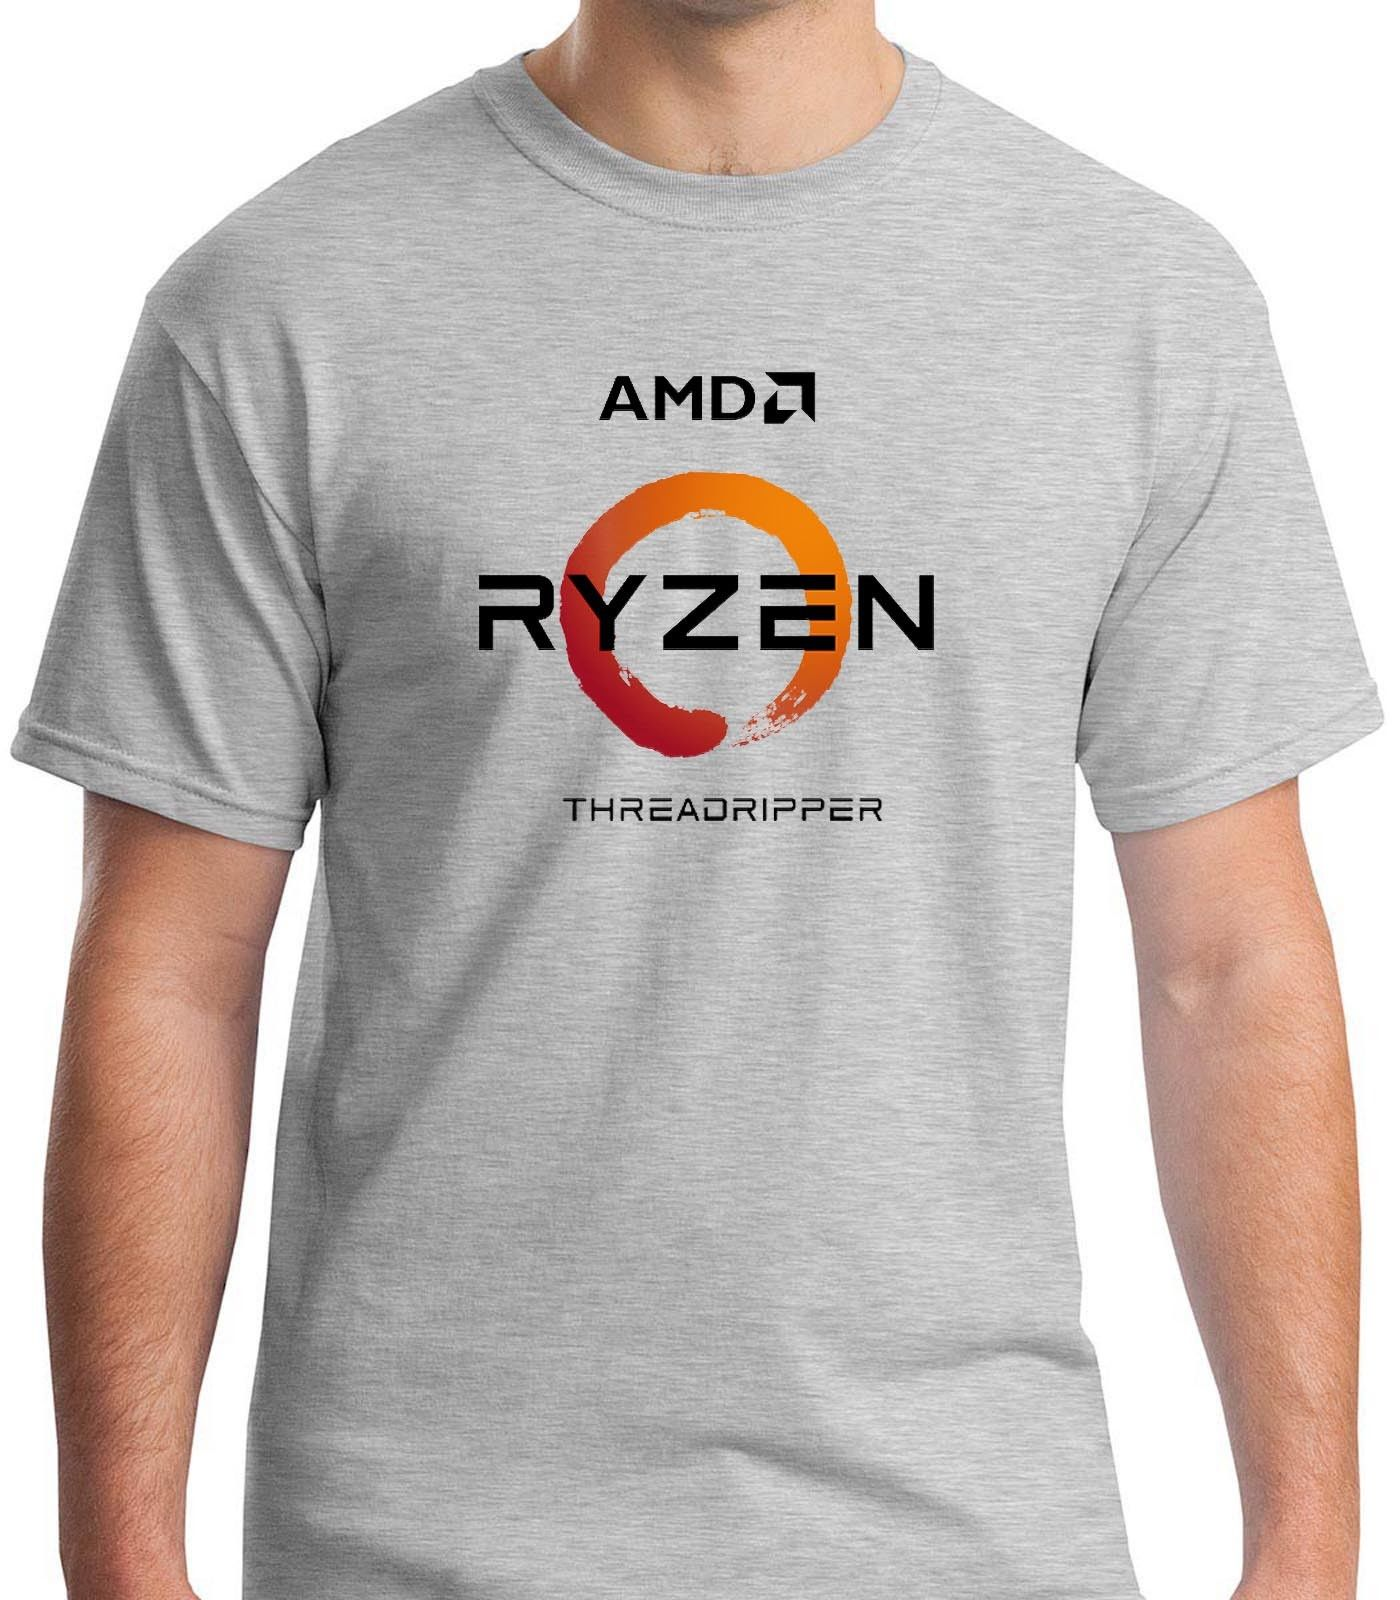 AMD Ryzen Threadripper Processors Grey T-shirt Mens Tshirt S to 3XL